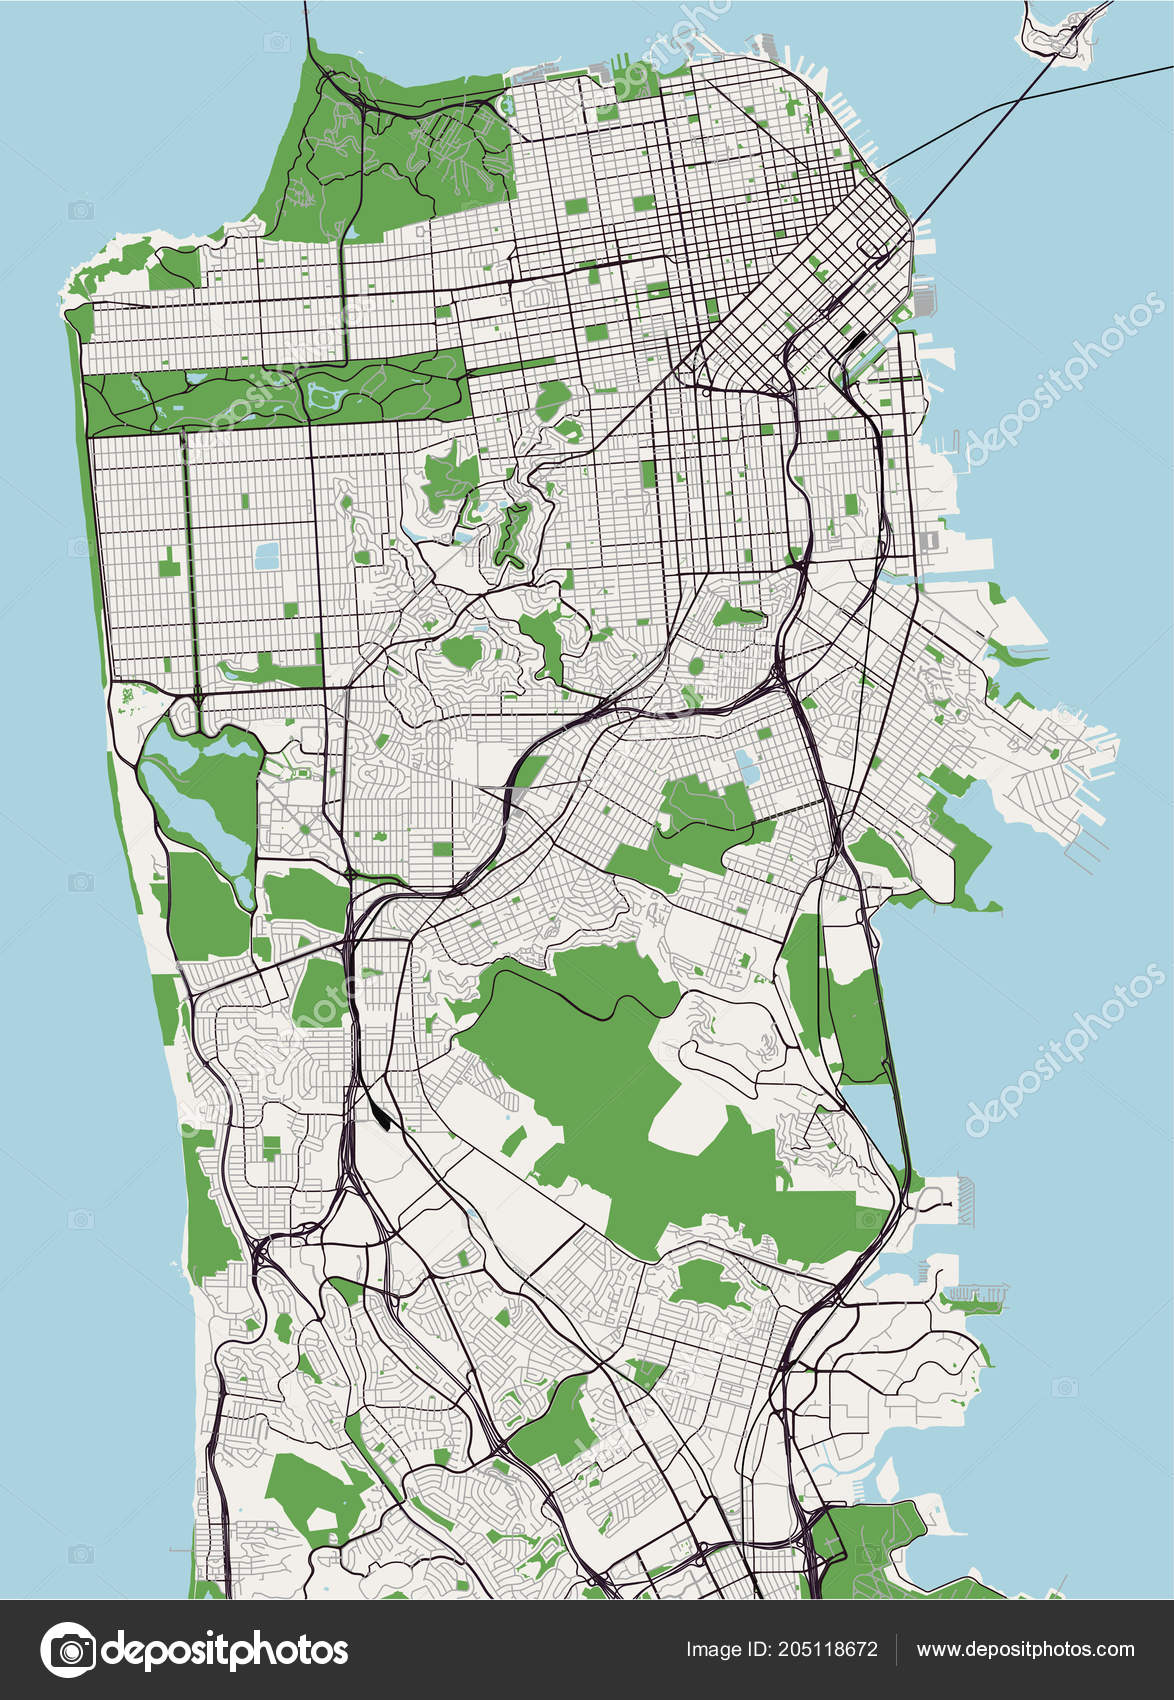 Vector Map City San Francisco Usa — Stock Vector © tish11 ... on arcadia map, lodi map, chicago map, berkeley map, california map, vacaville map, costa mesa map, los angeles map, bakersfield map, richmond map, redlands map, glendale map, pleasanton map, union city map, sunnyvale map, newark map, yuba city map, sherman oaks map, bloomington map, golden gate state park map,